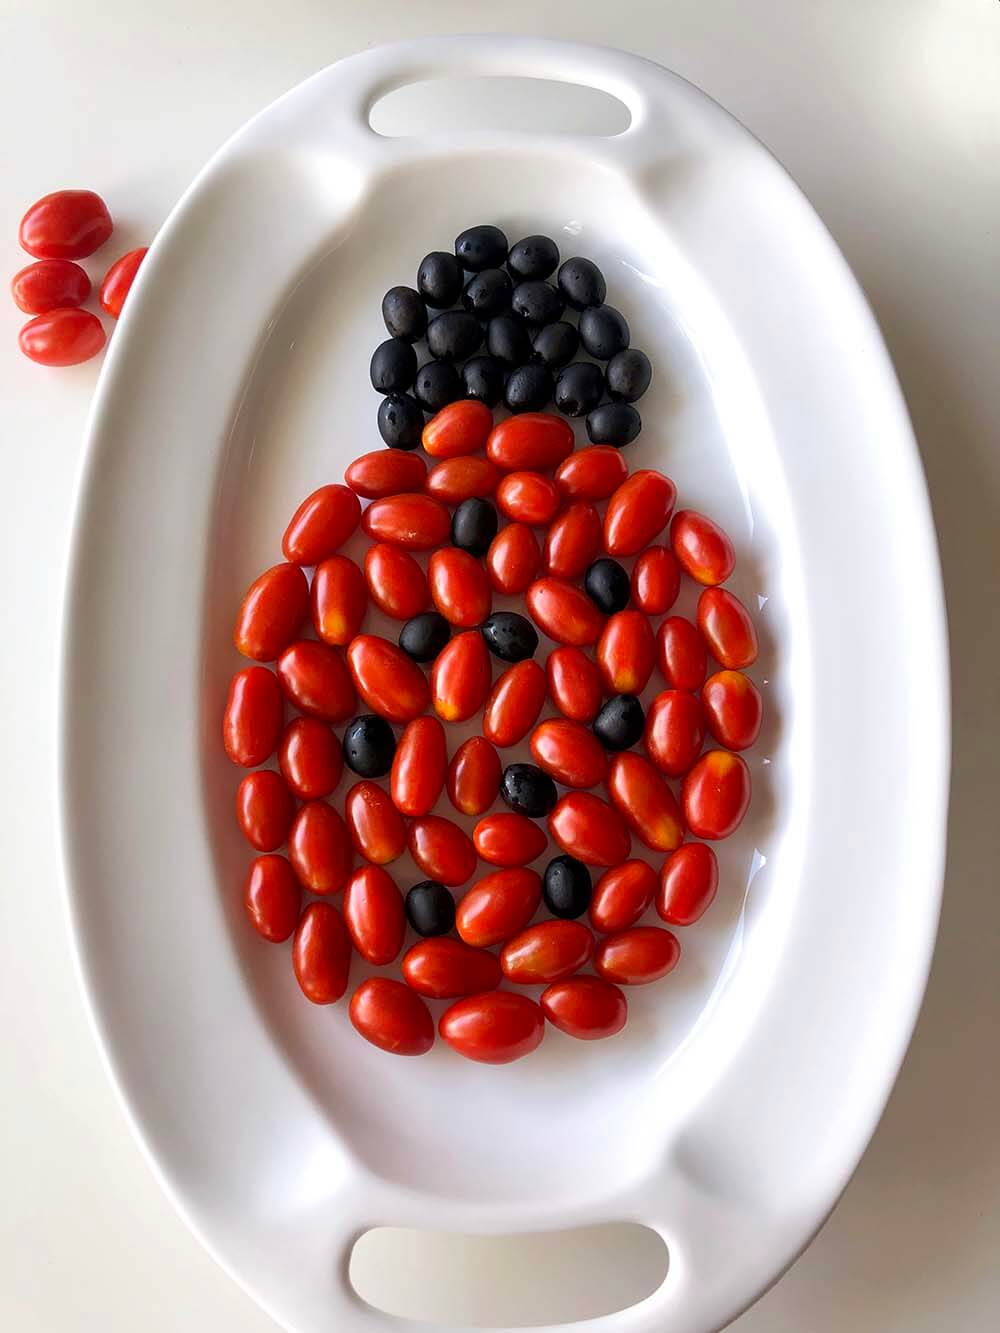 vegetable ladybug with tomato body and olive spots on white tray